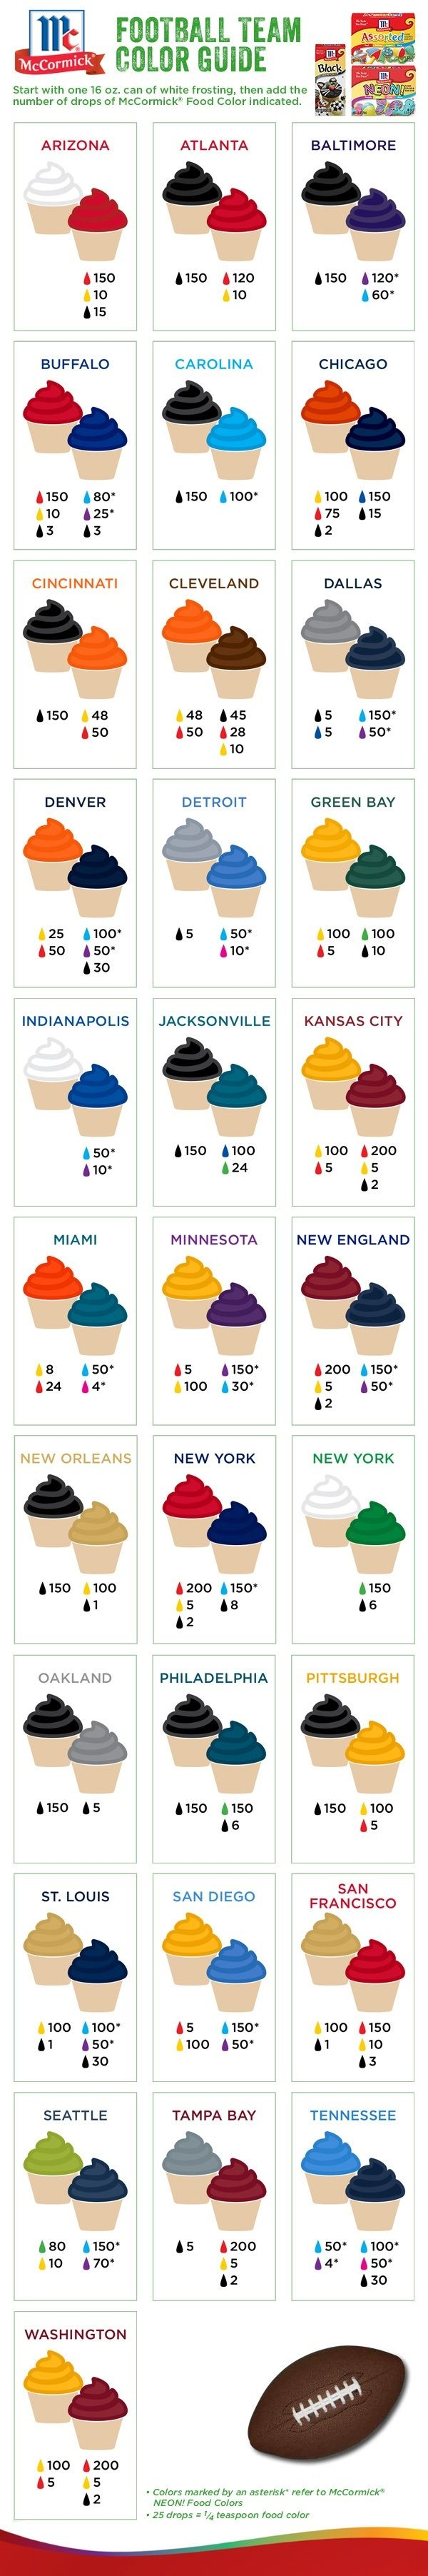 Football Team Food Coloring Guide Pictures, Photos, and Images for ...